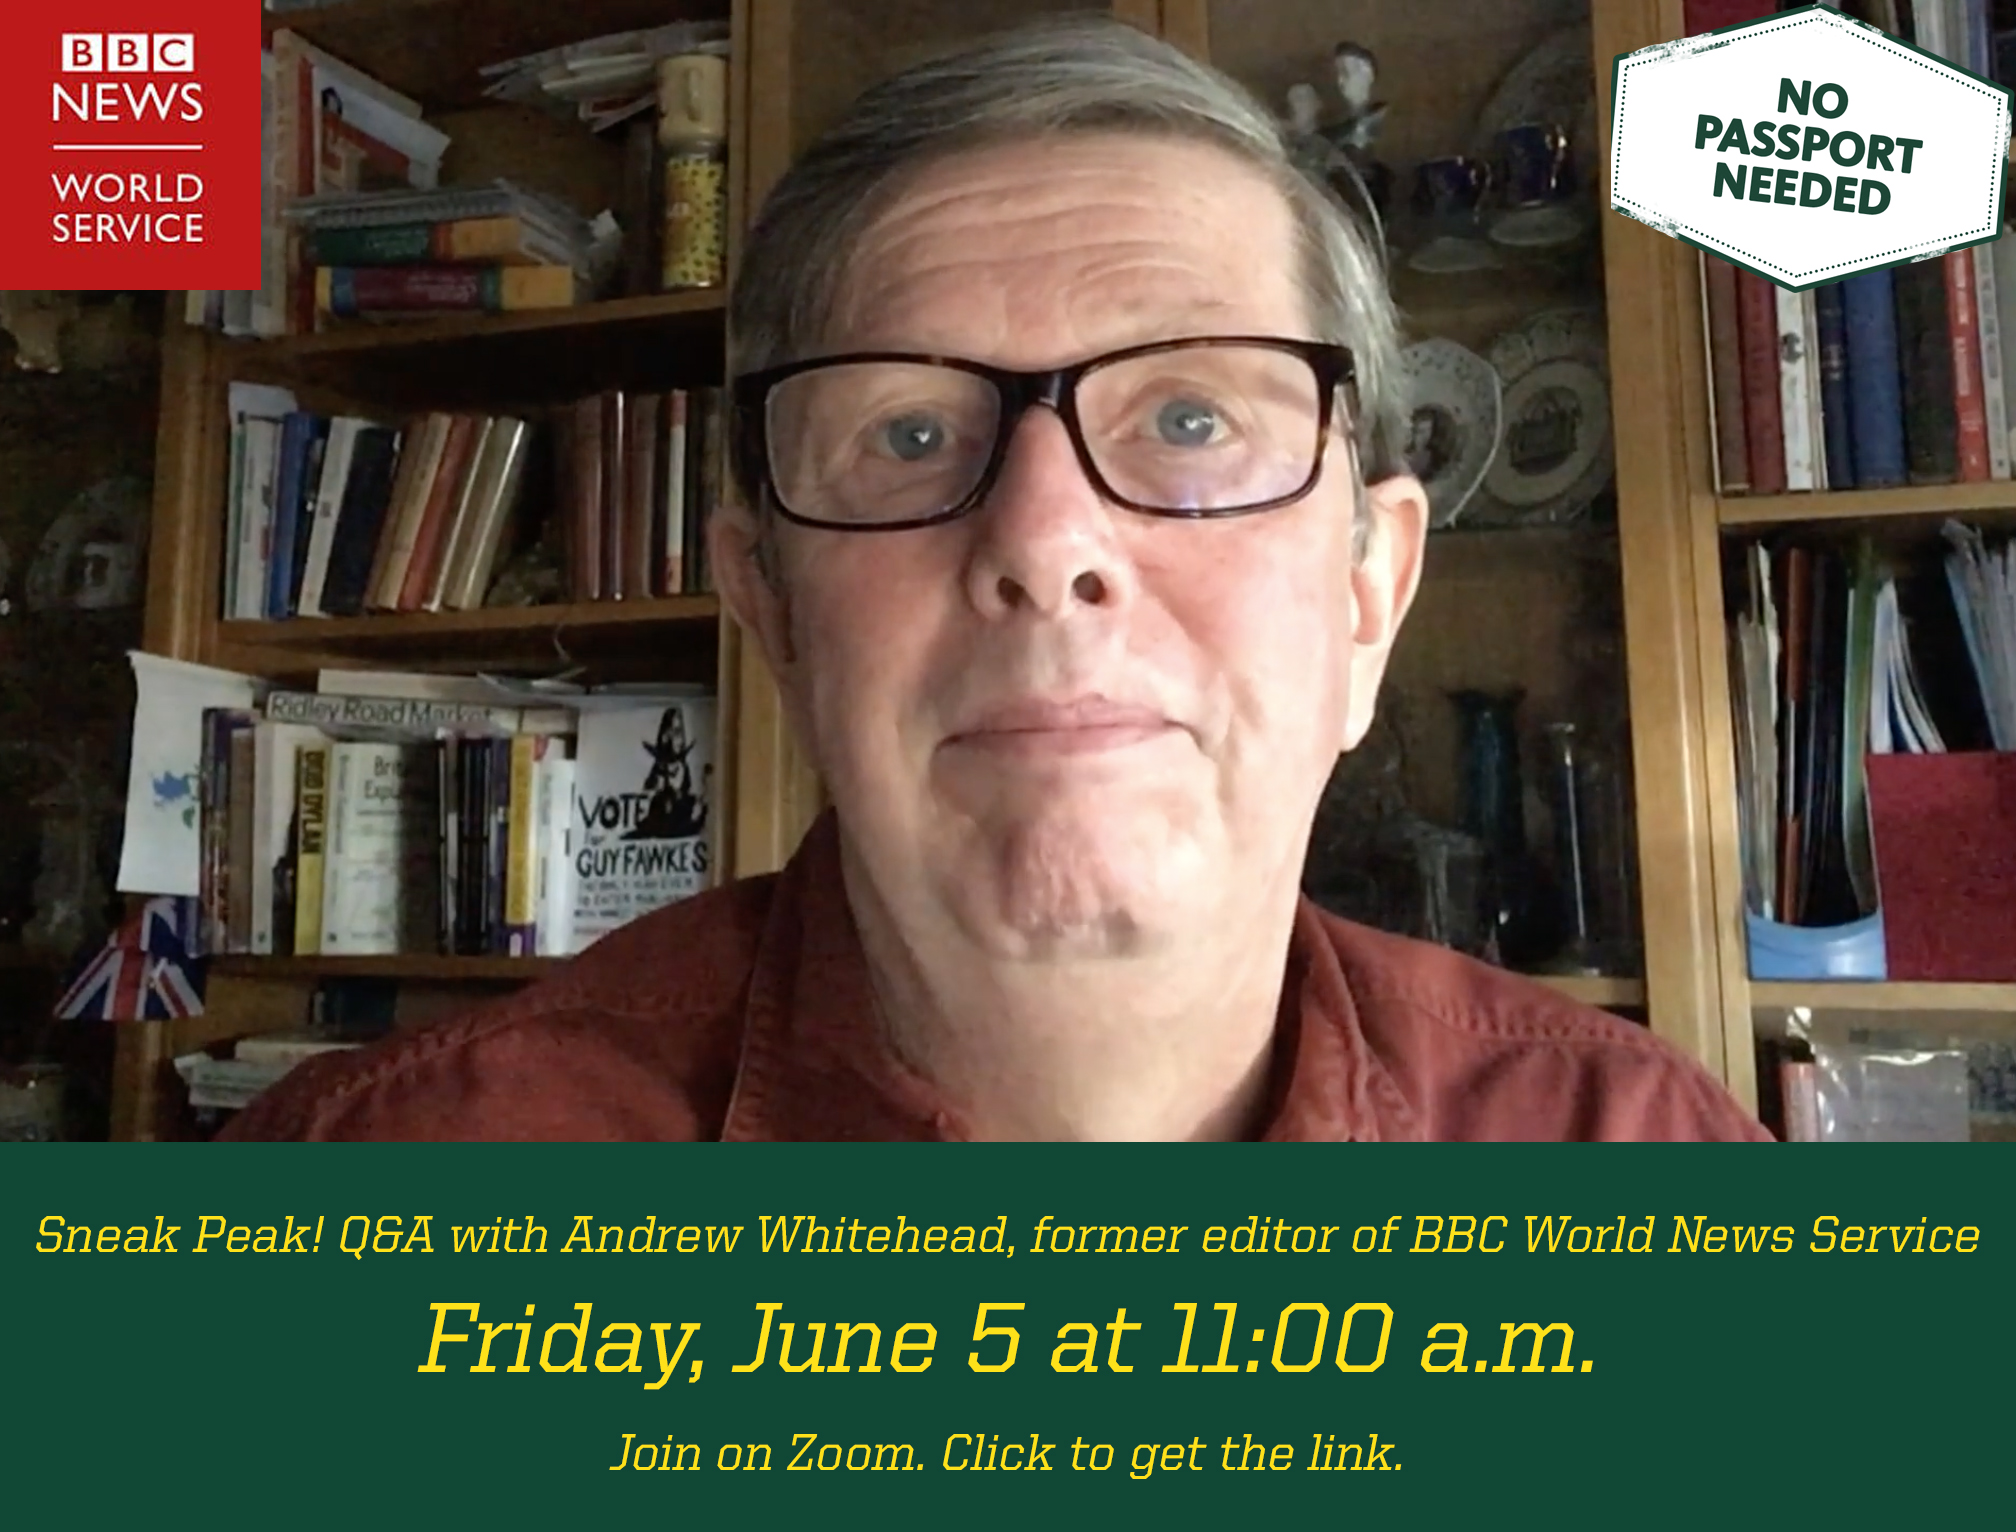 Sneak Peak! Q&A with Andrew Whitehead on Friday, June 5 at 11 am. Click the image to get the zoom link